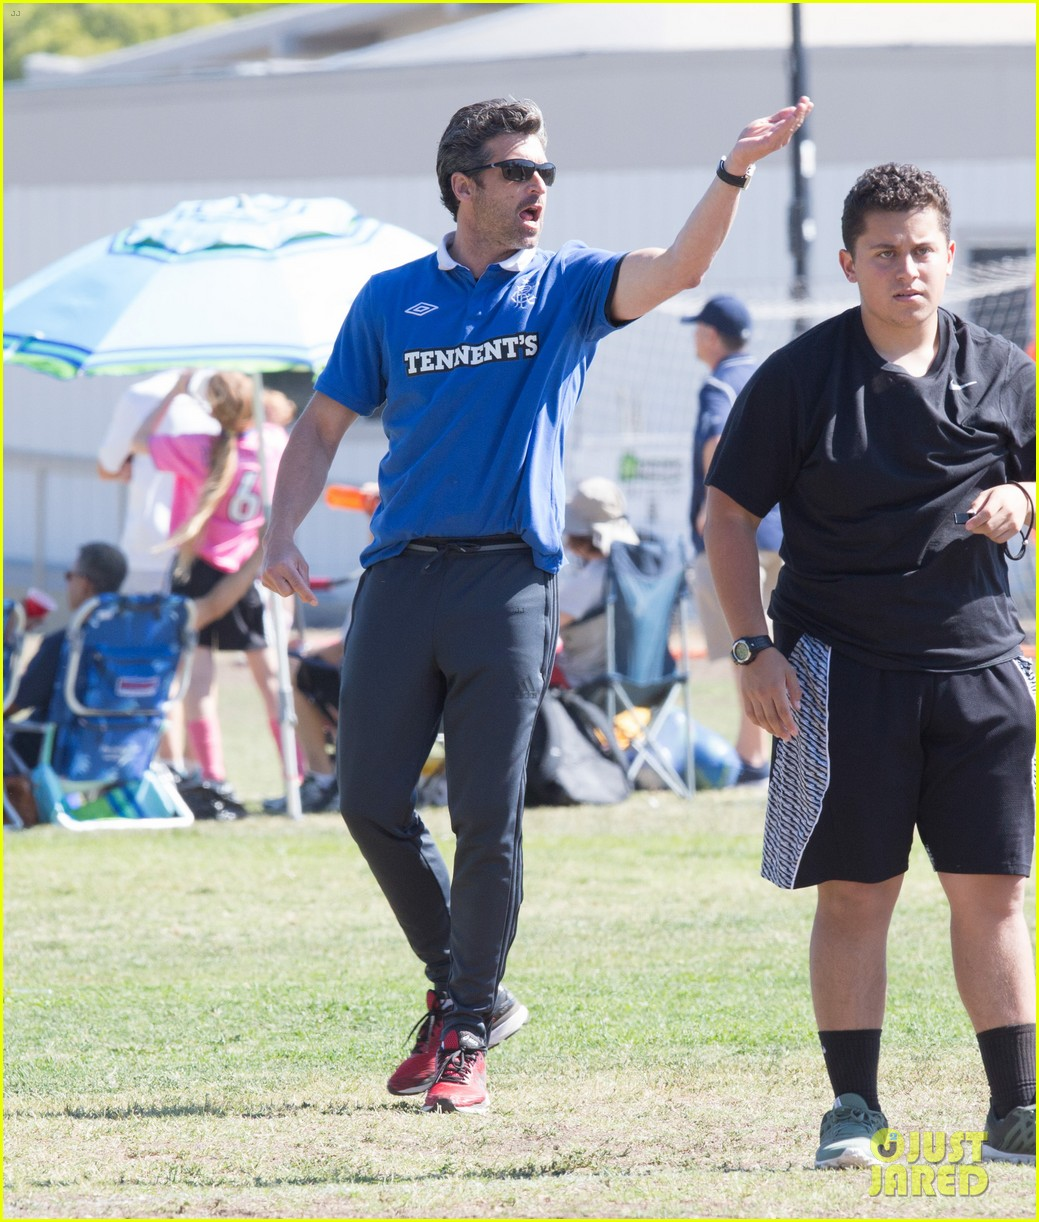 Patrick Dempsey Is The Ultimate Soccer Dad Photo 3664117 Jillian